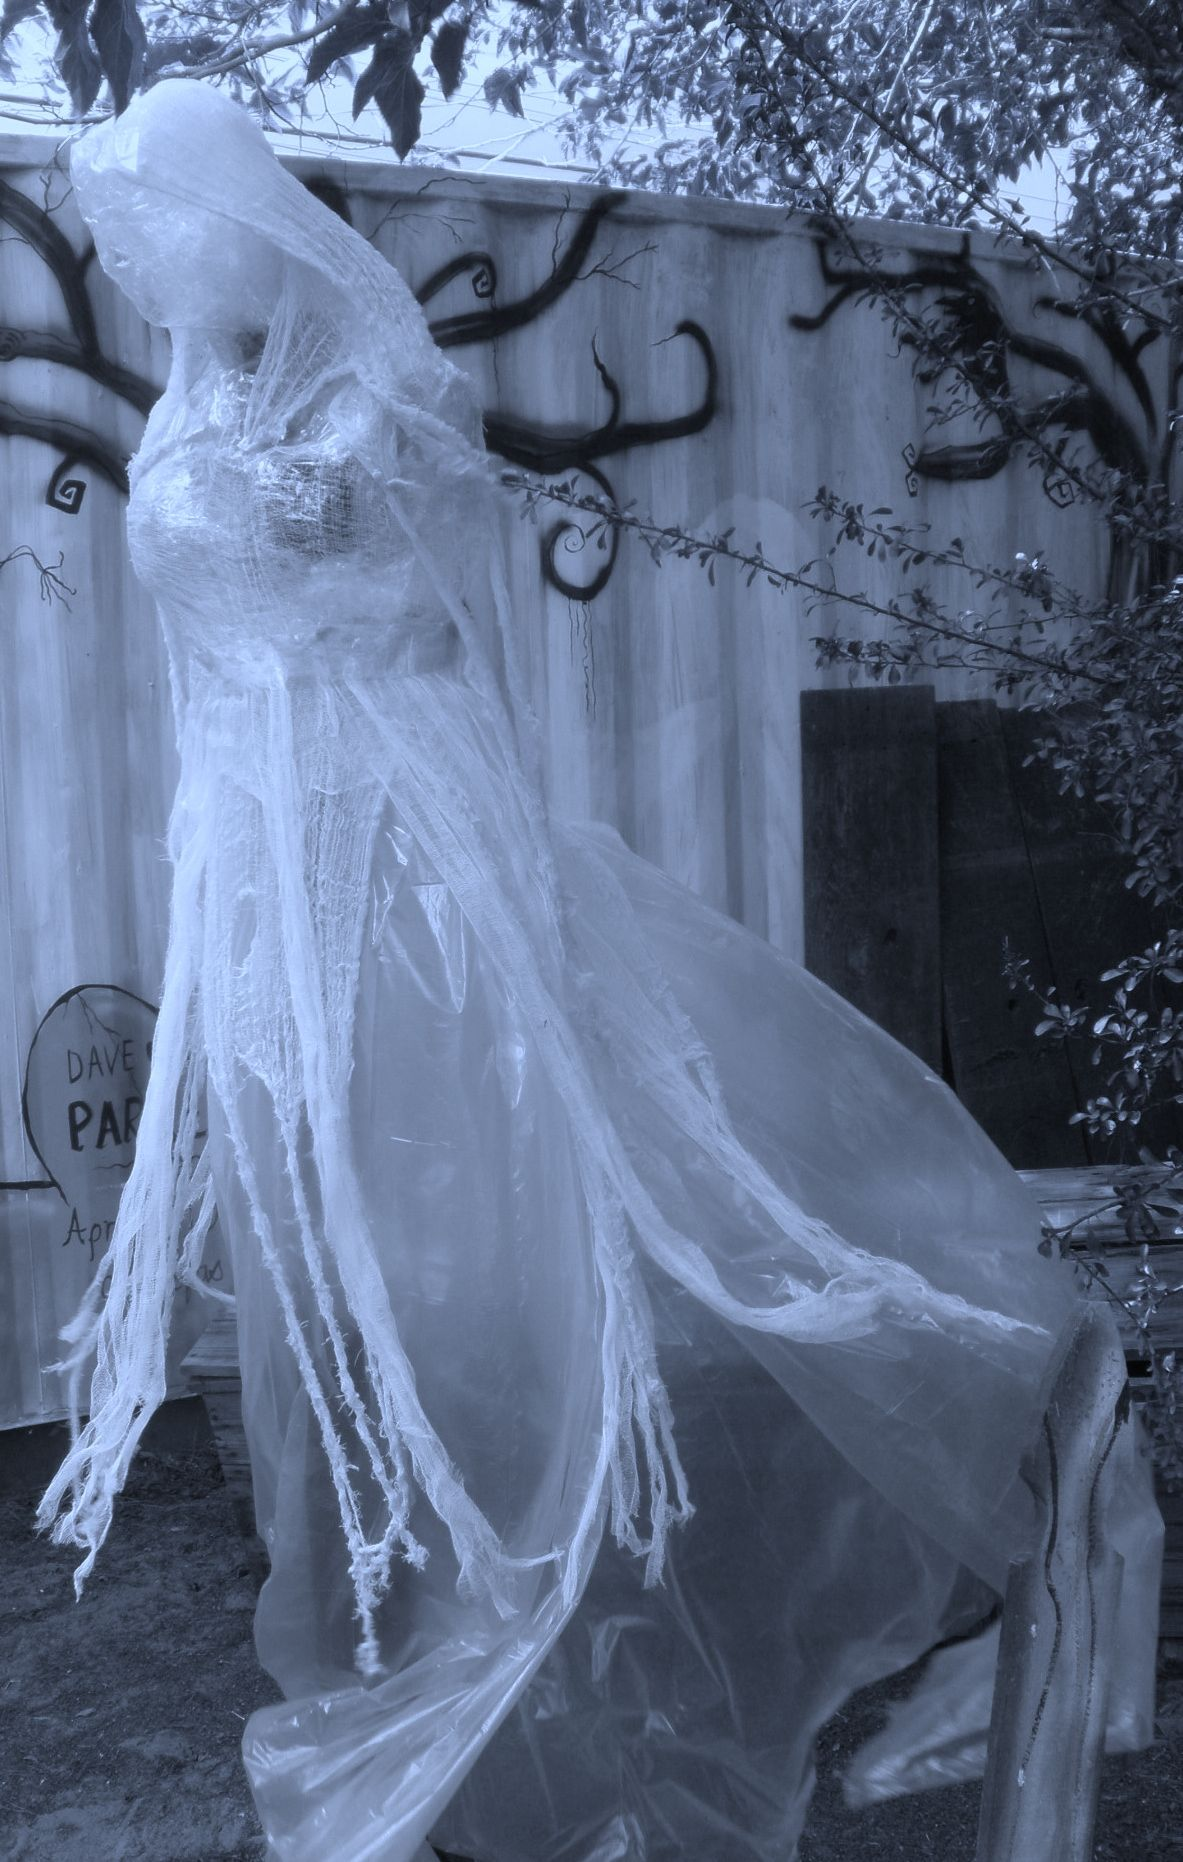 7ft tall packing tape ghost finished today.